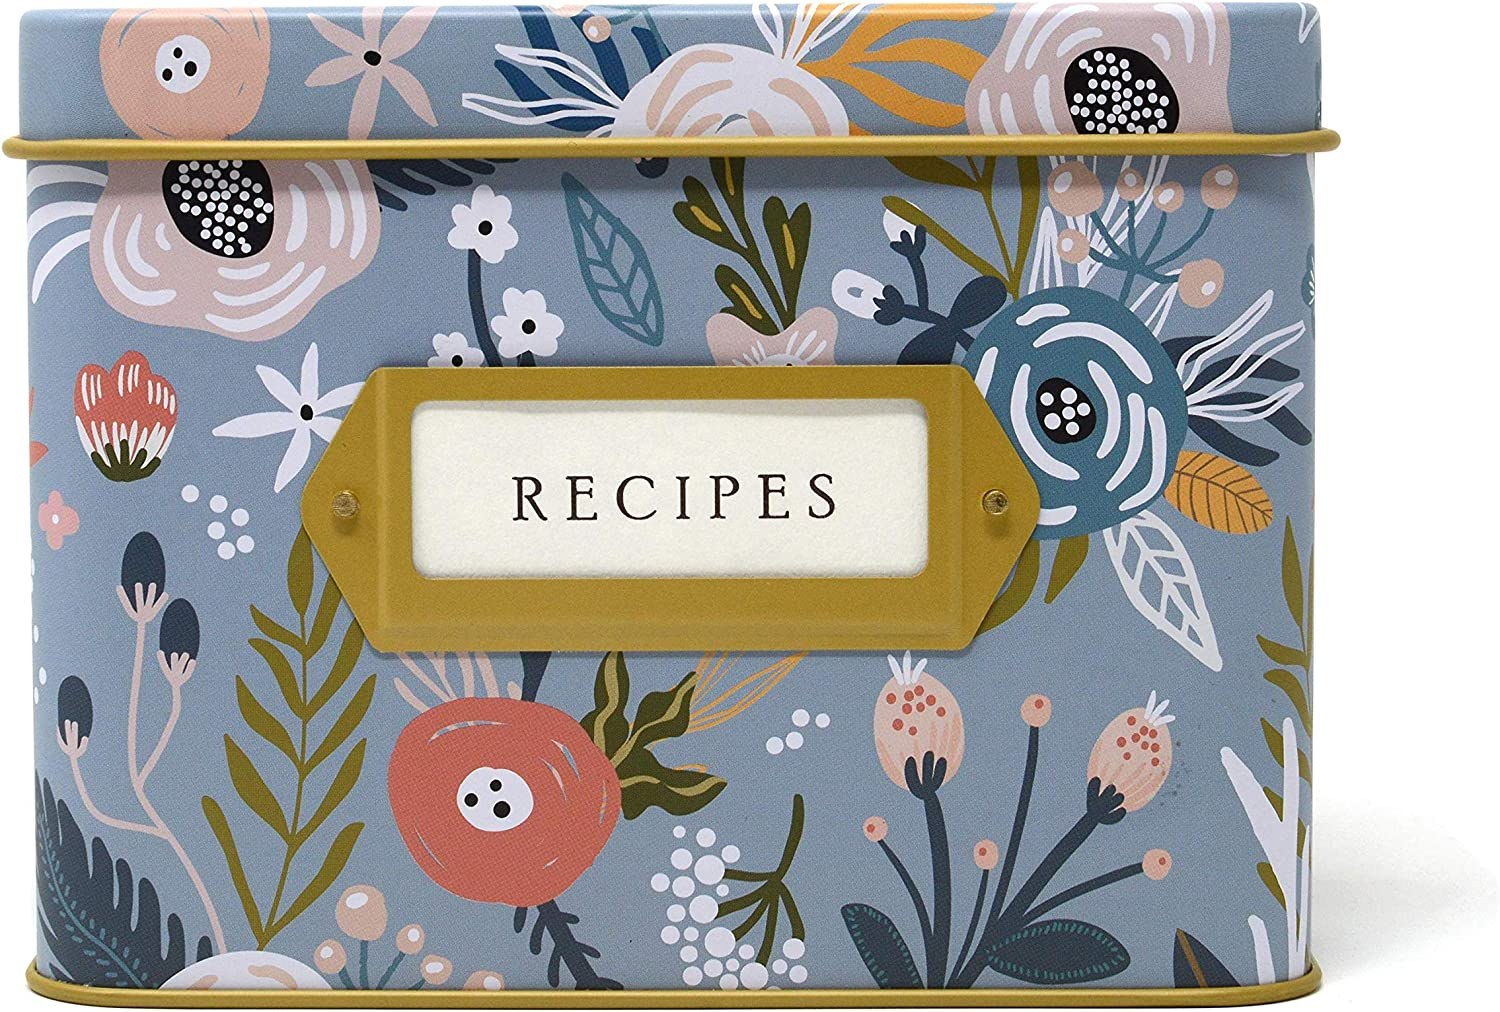 Jot & Mark Decorative Tin for Recipe Cards   Holds Hundreds of 4x6 Cards (Garden Floral)